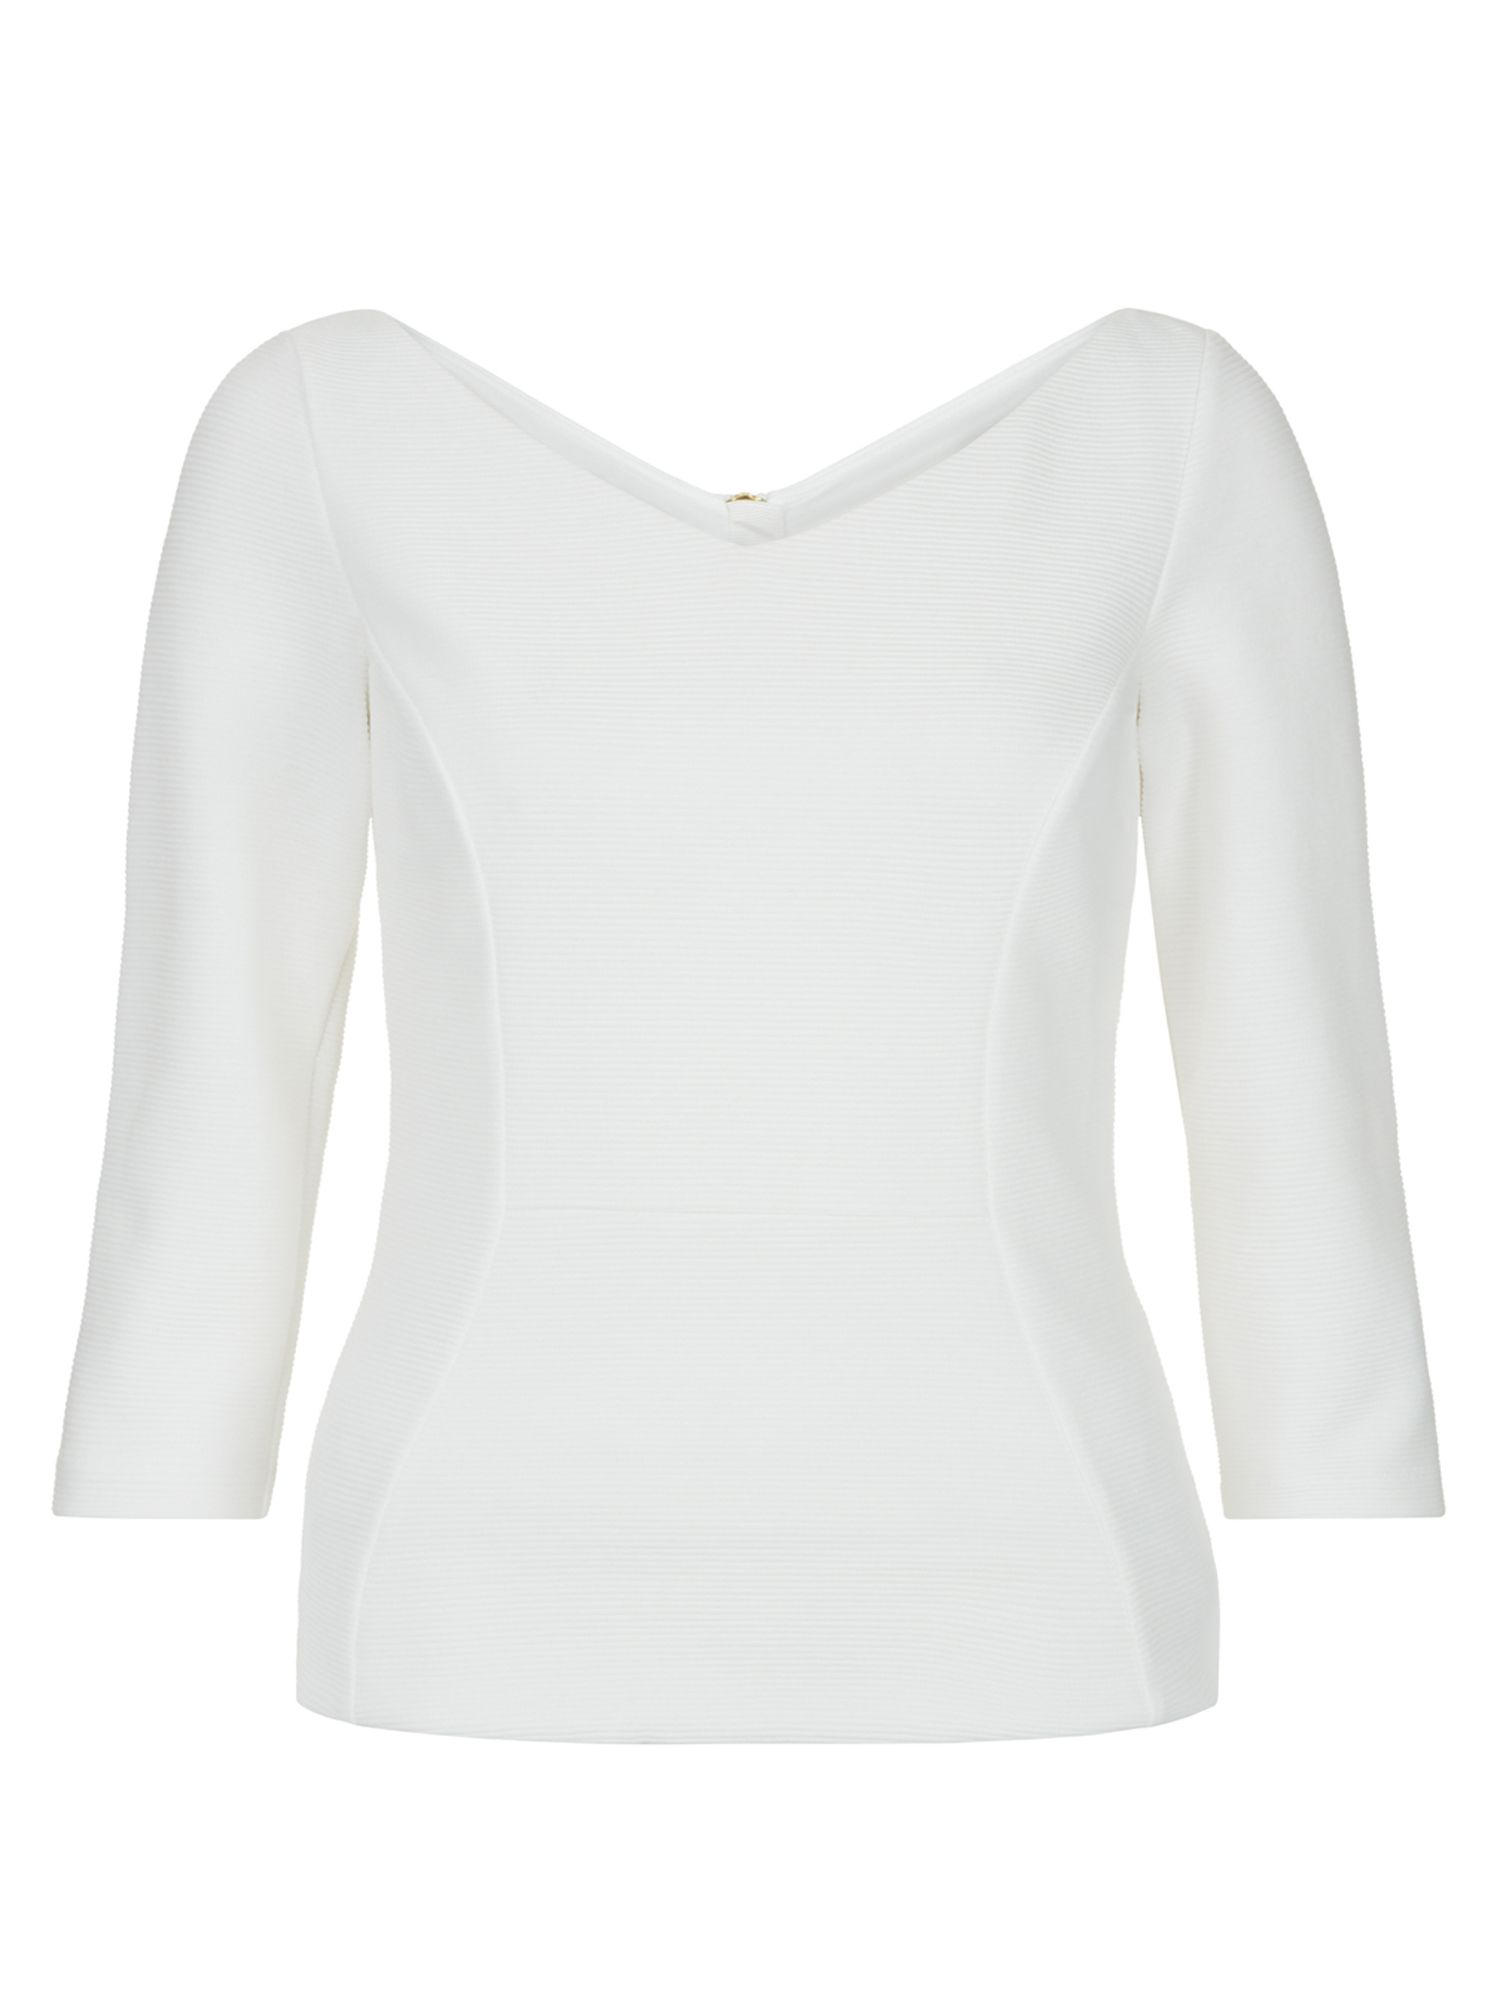 Hobbs Clemence Top, Cream